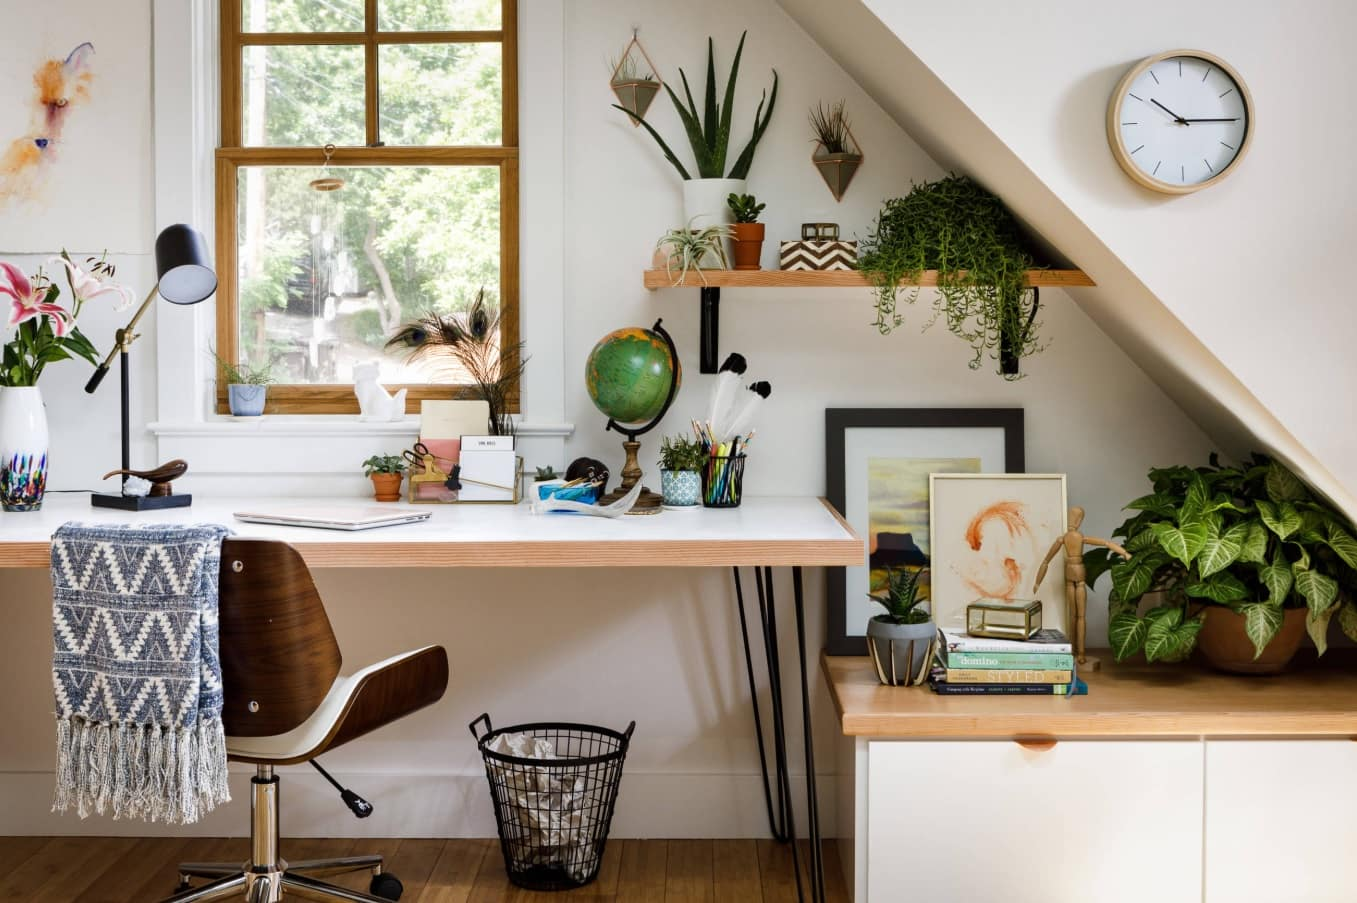 Overview of 10+ Biggest Home Design Trends in 2019 so Far. Eco designed room